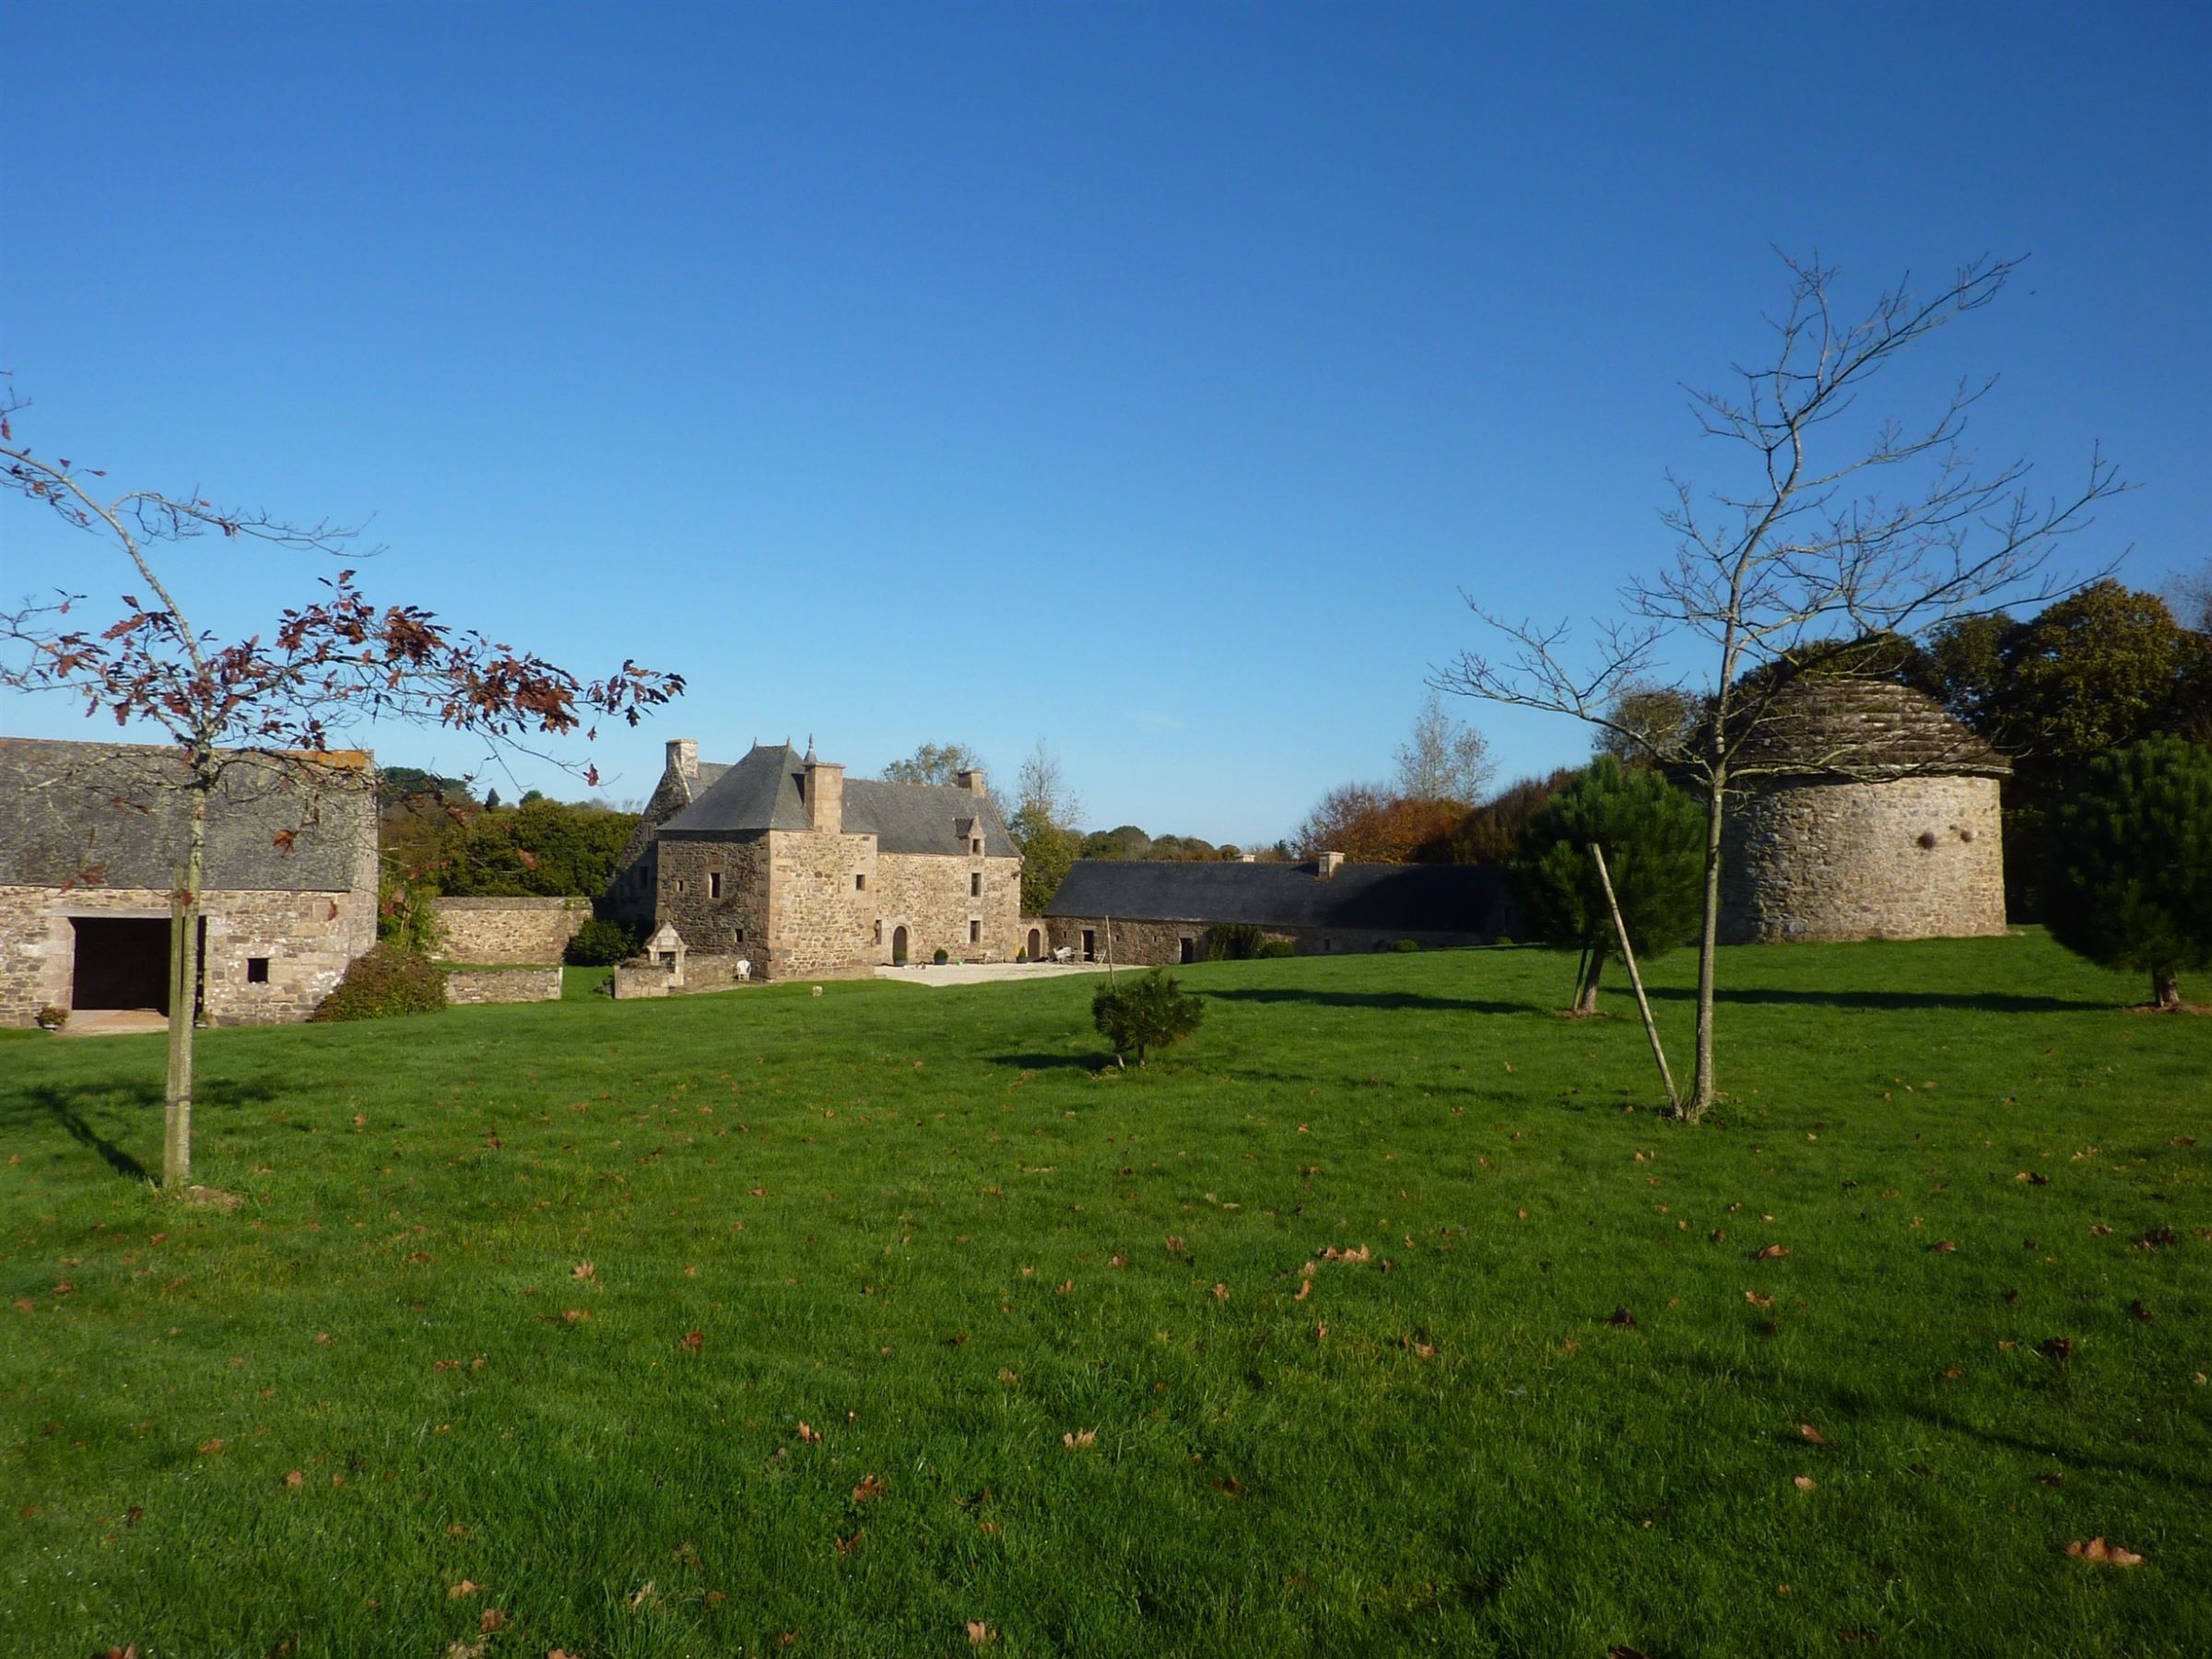 Property For Sale at Listed Manor + outbuildings set on 135 acres near the Pink Granite Coast.